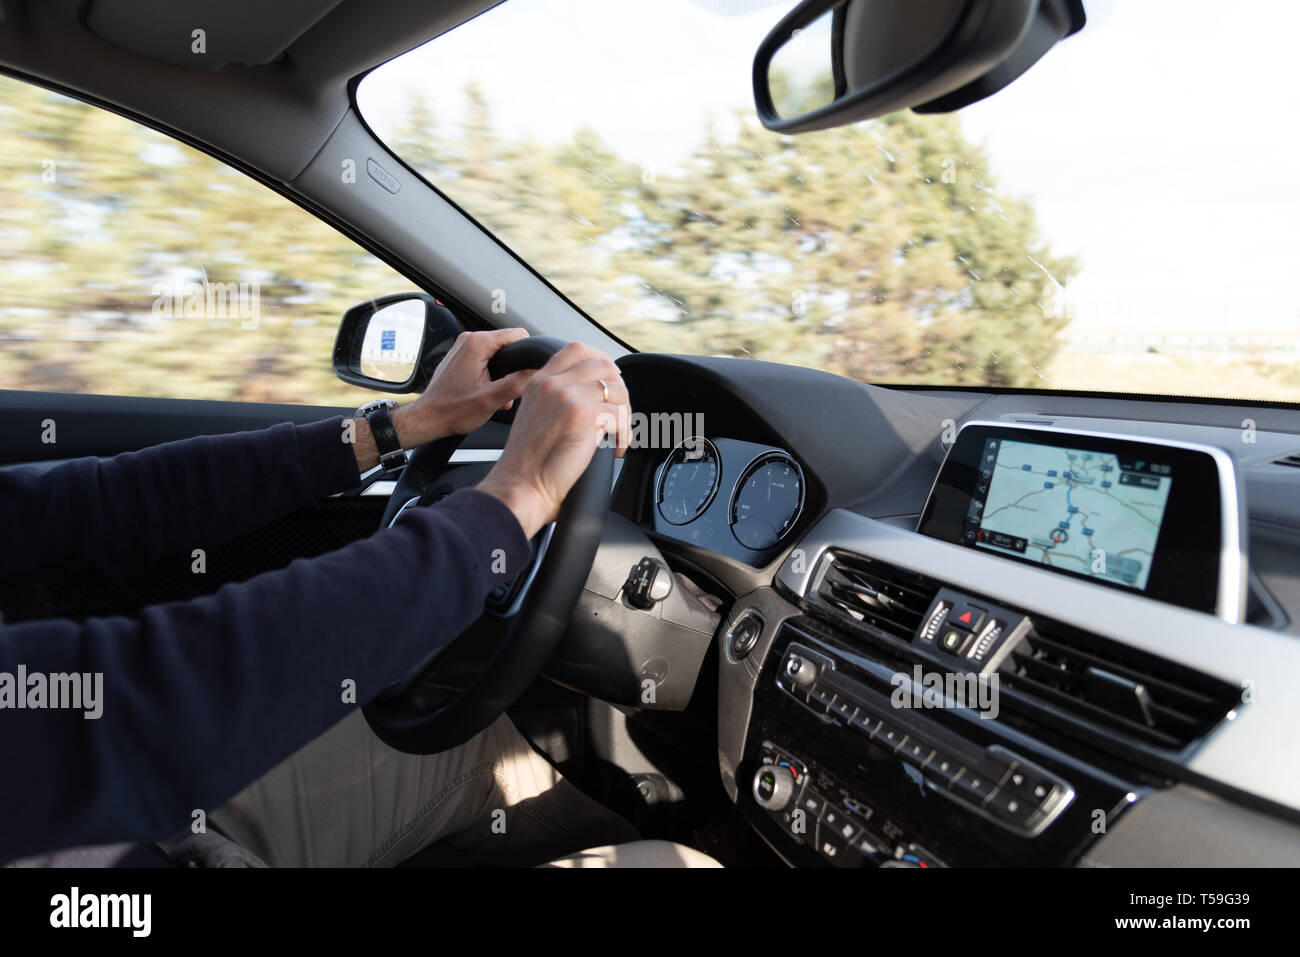 Madrid, Spain - April 1, 2019: Side view of man driving BMW X2 car, with his hands on the steering wheel, using a satelite navigation GPS - Stock Image